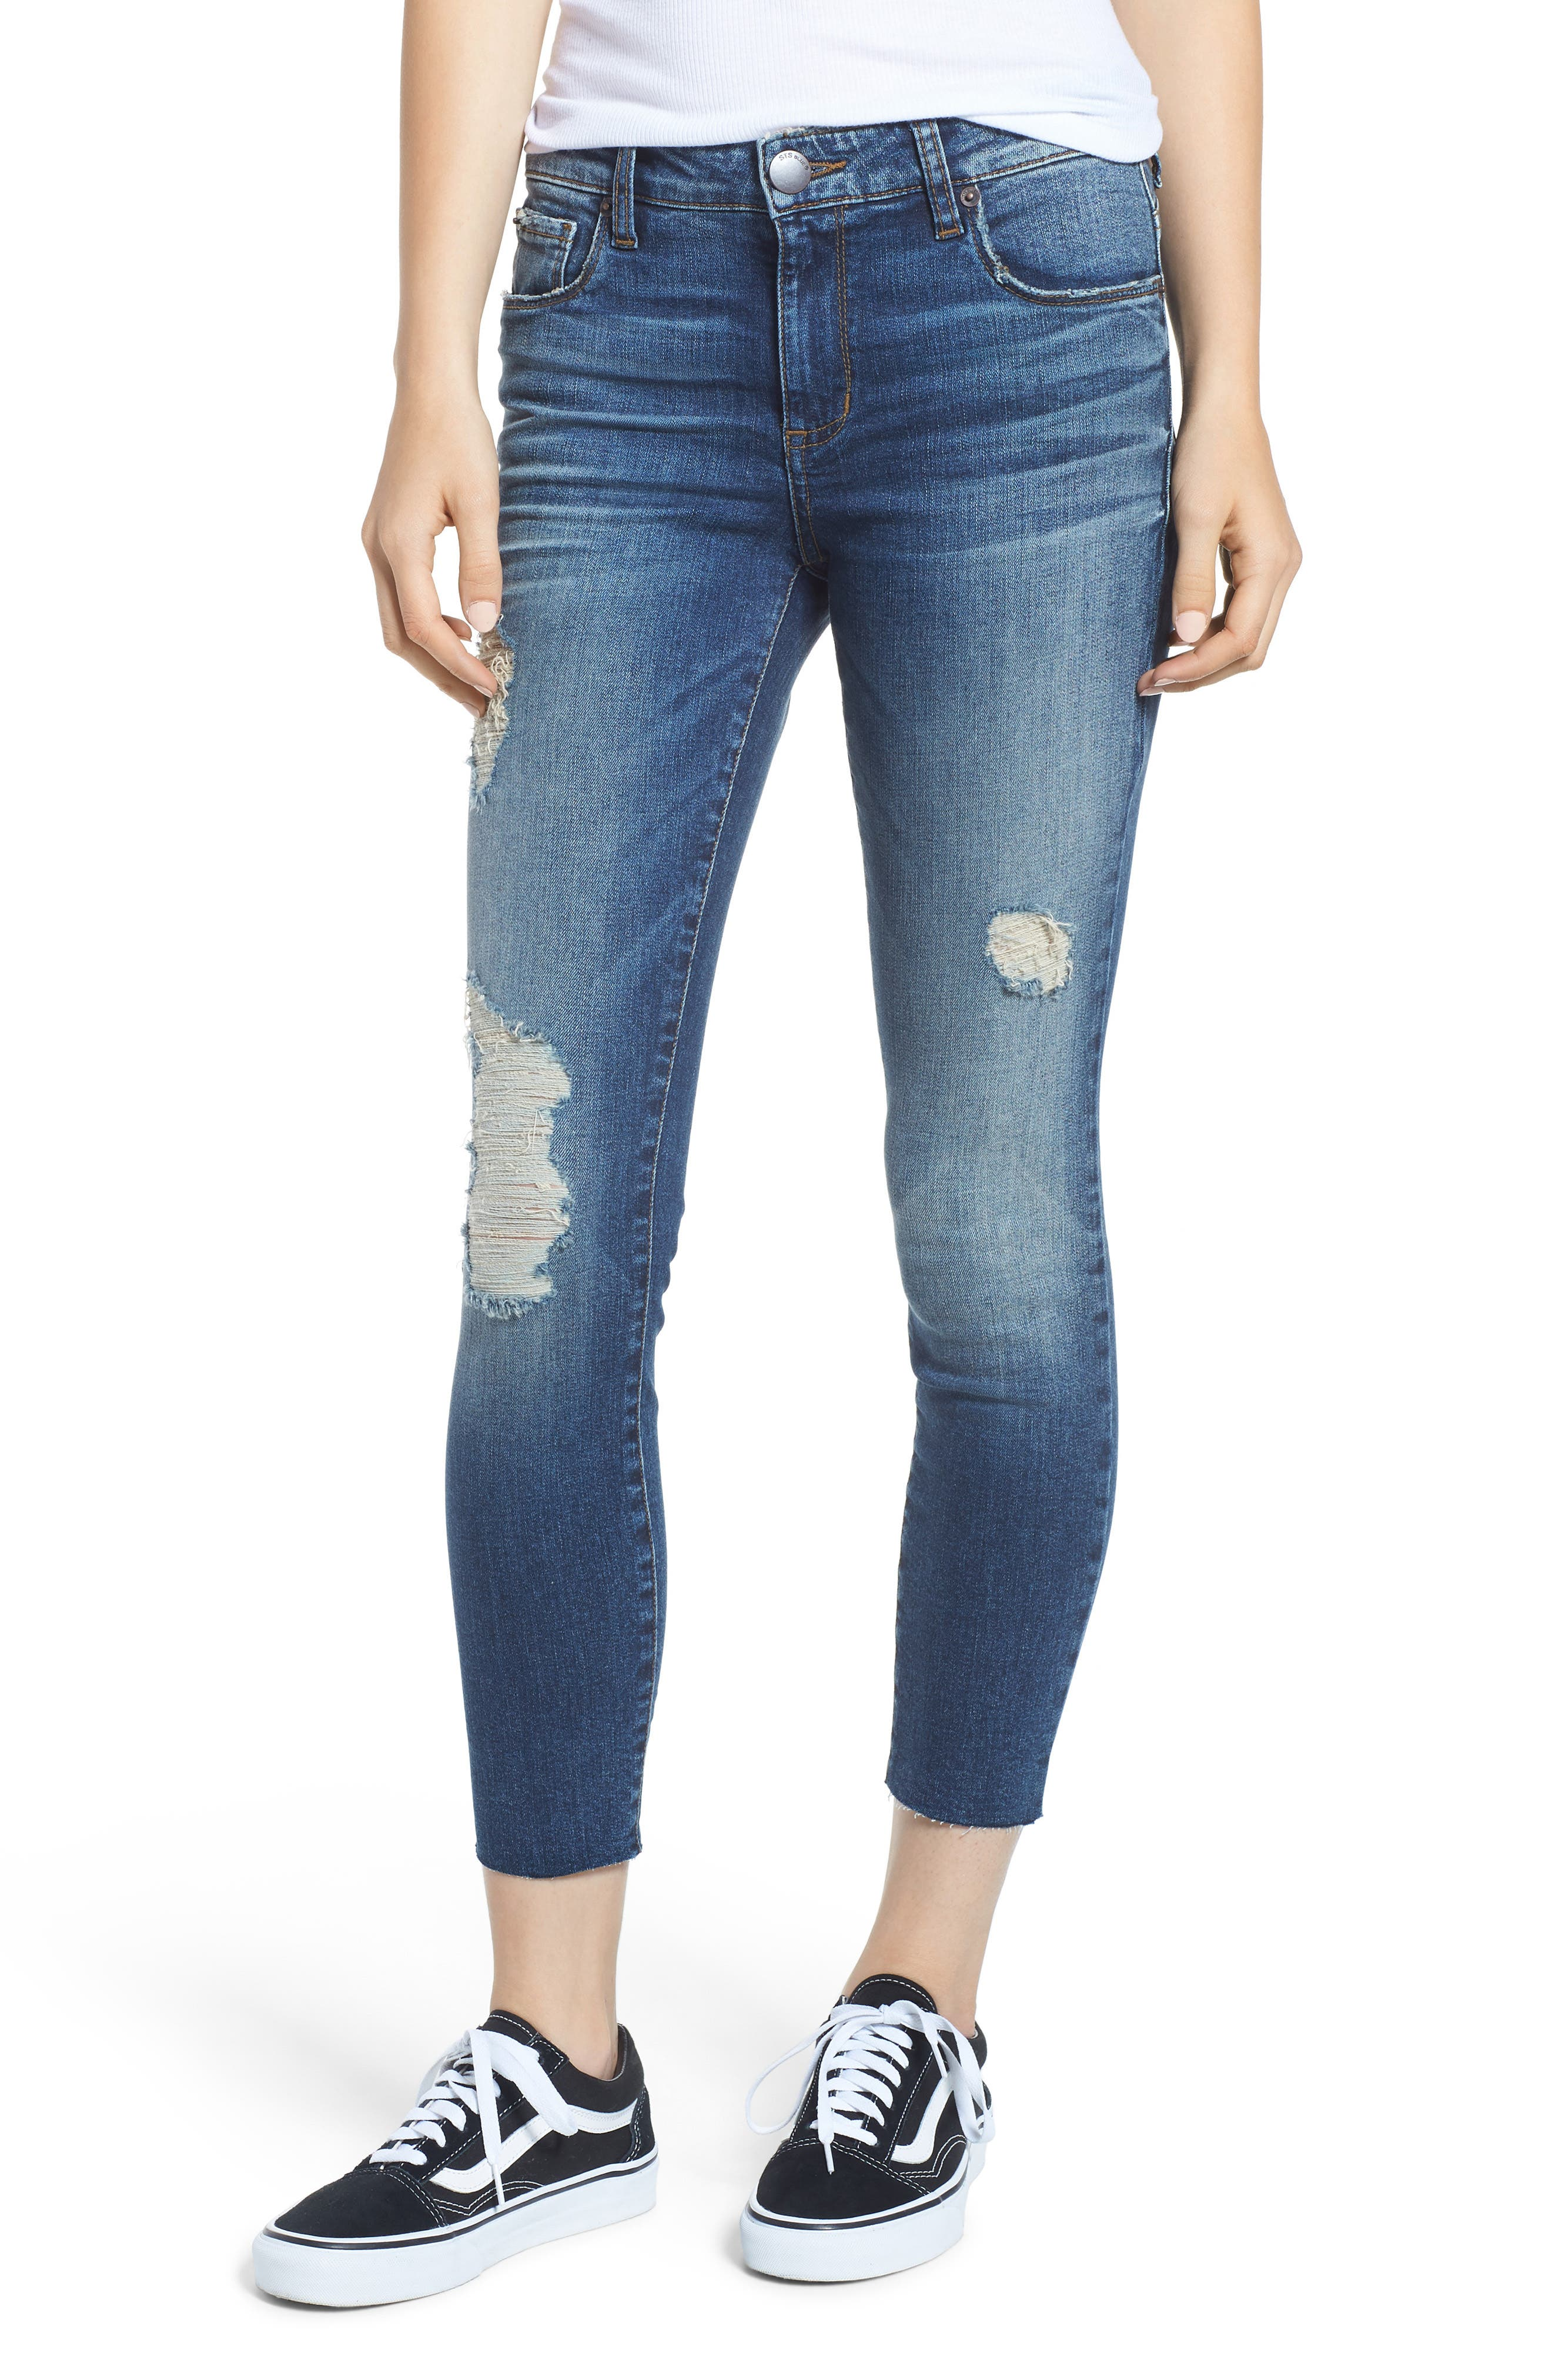 SWAT FAME Women's Sts Blue Ripped Cutoff Crop Skinny Jeans